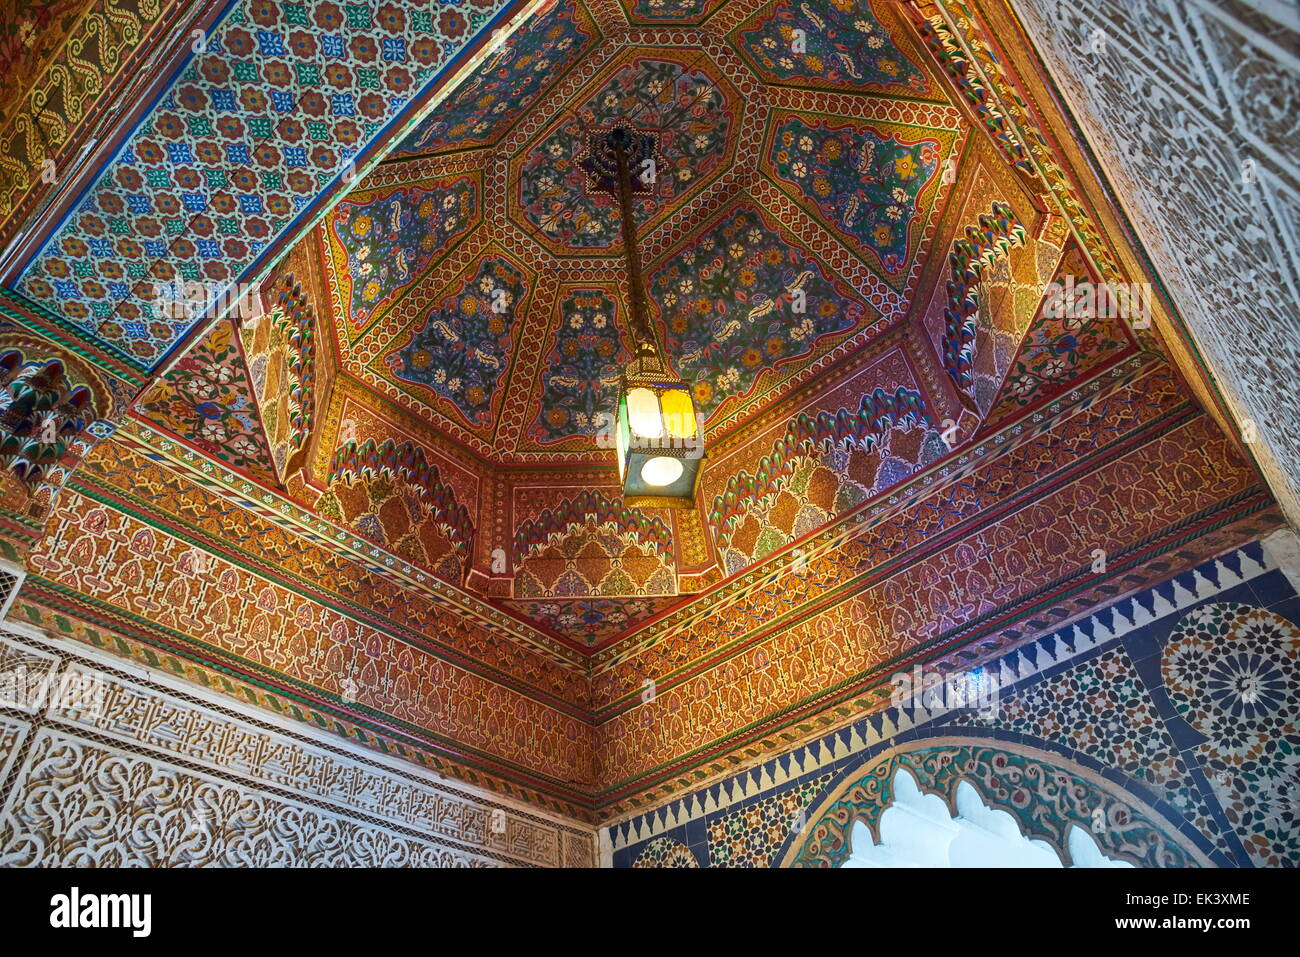 Painted wooden ceiling at Bahia Palace, Marrakech, Morocco, Africa Stock Photo